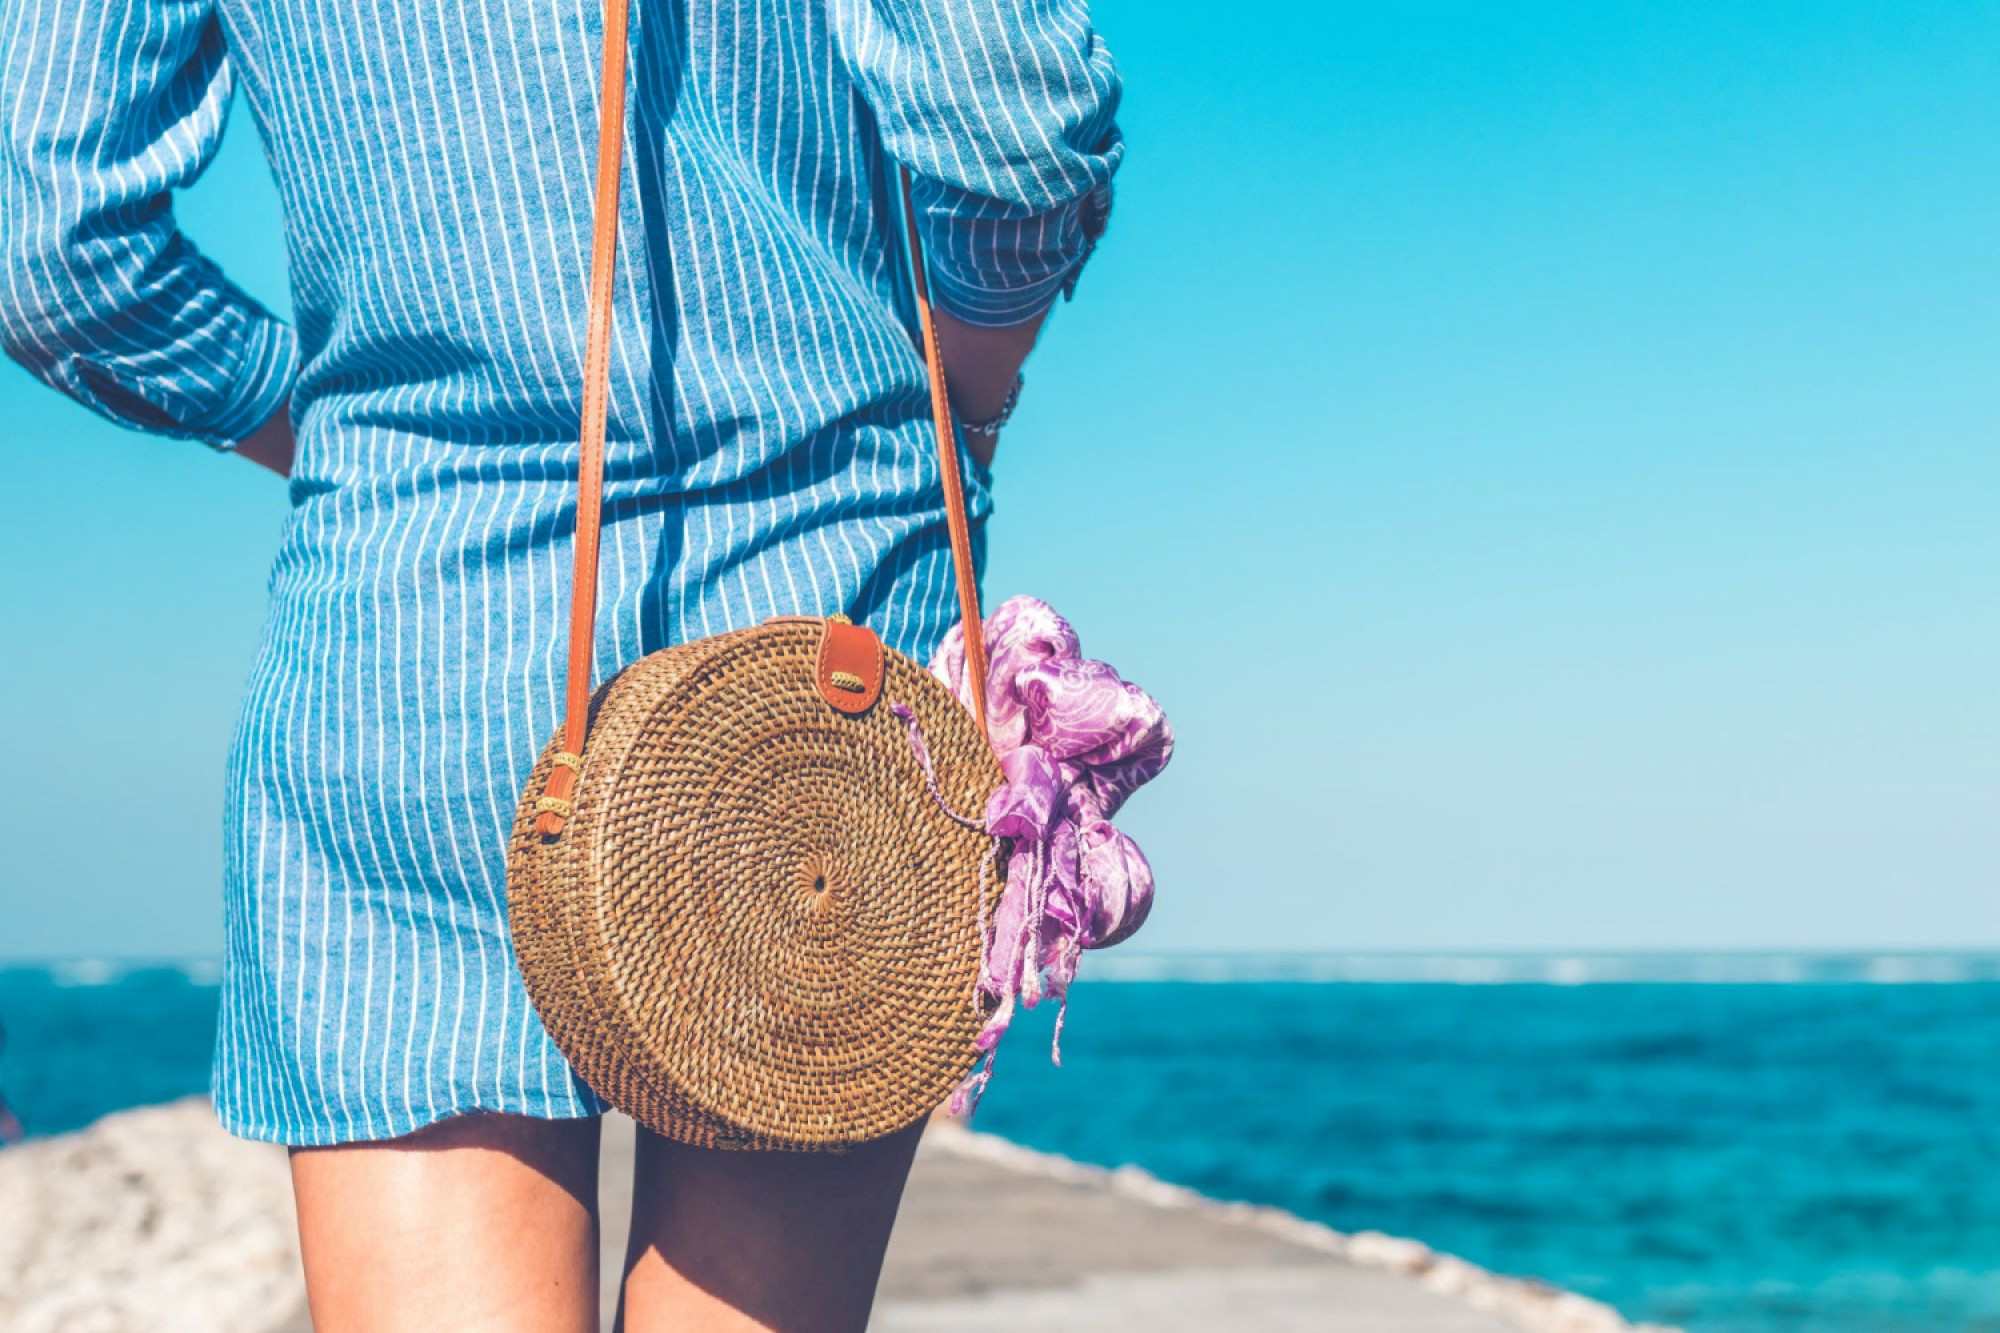 TREND ALERT: How To Style a Summer Scarf